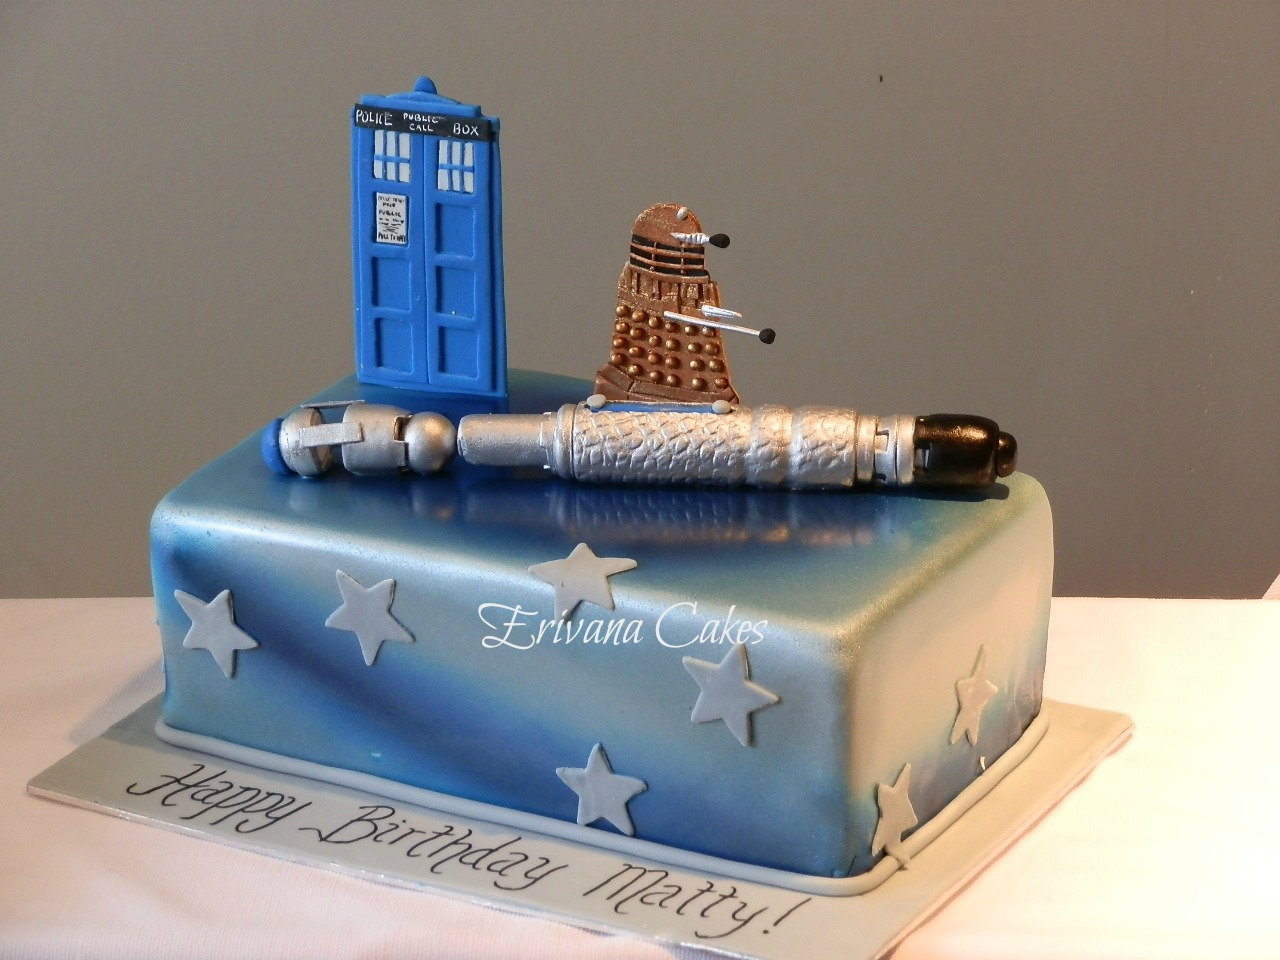 Pin Dr Who Screwdriver Cake Police Box And Dalek Cake on Pinterest